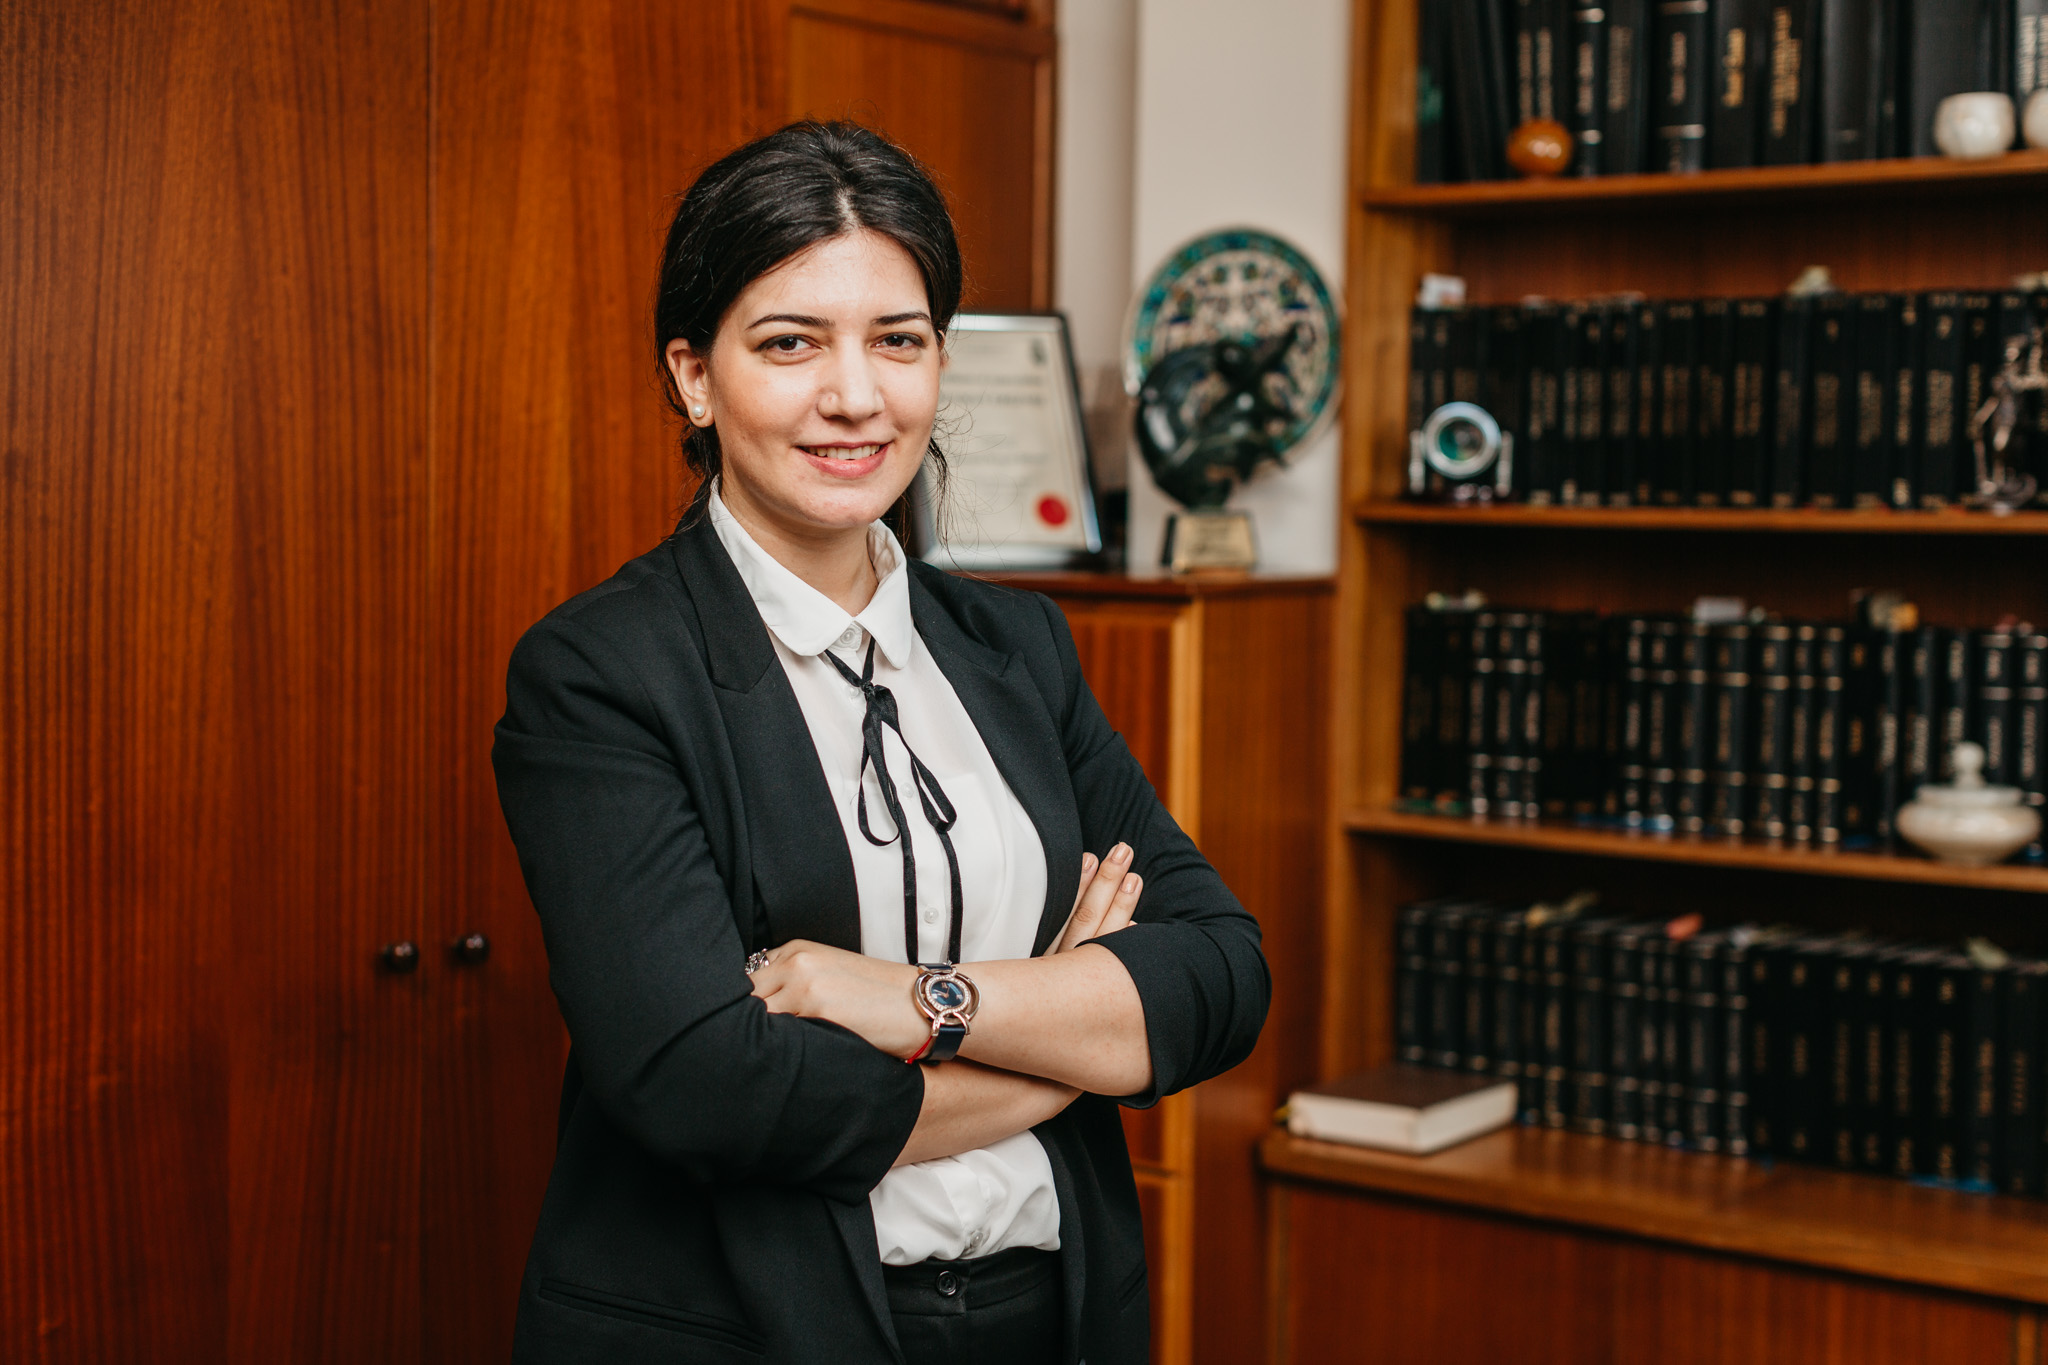 Günperi Şişman is an IP and corporate lawyer in Northern Cyprus. She deals with trademark registration, intelectual property disputes